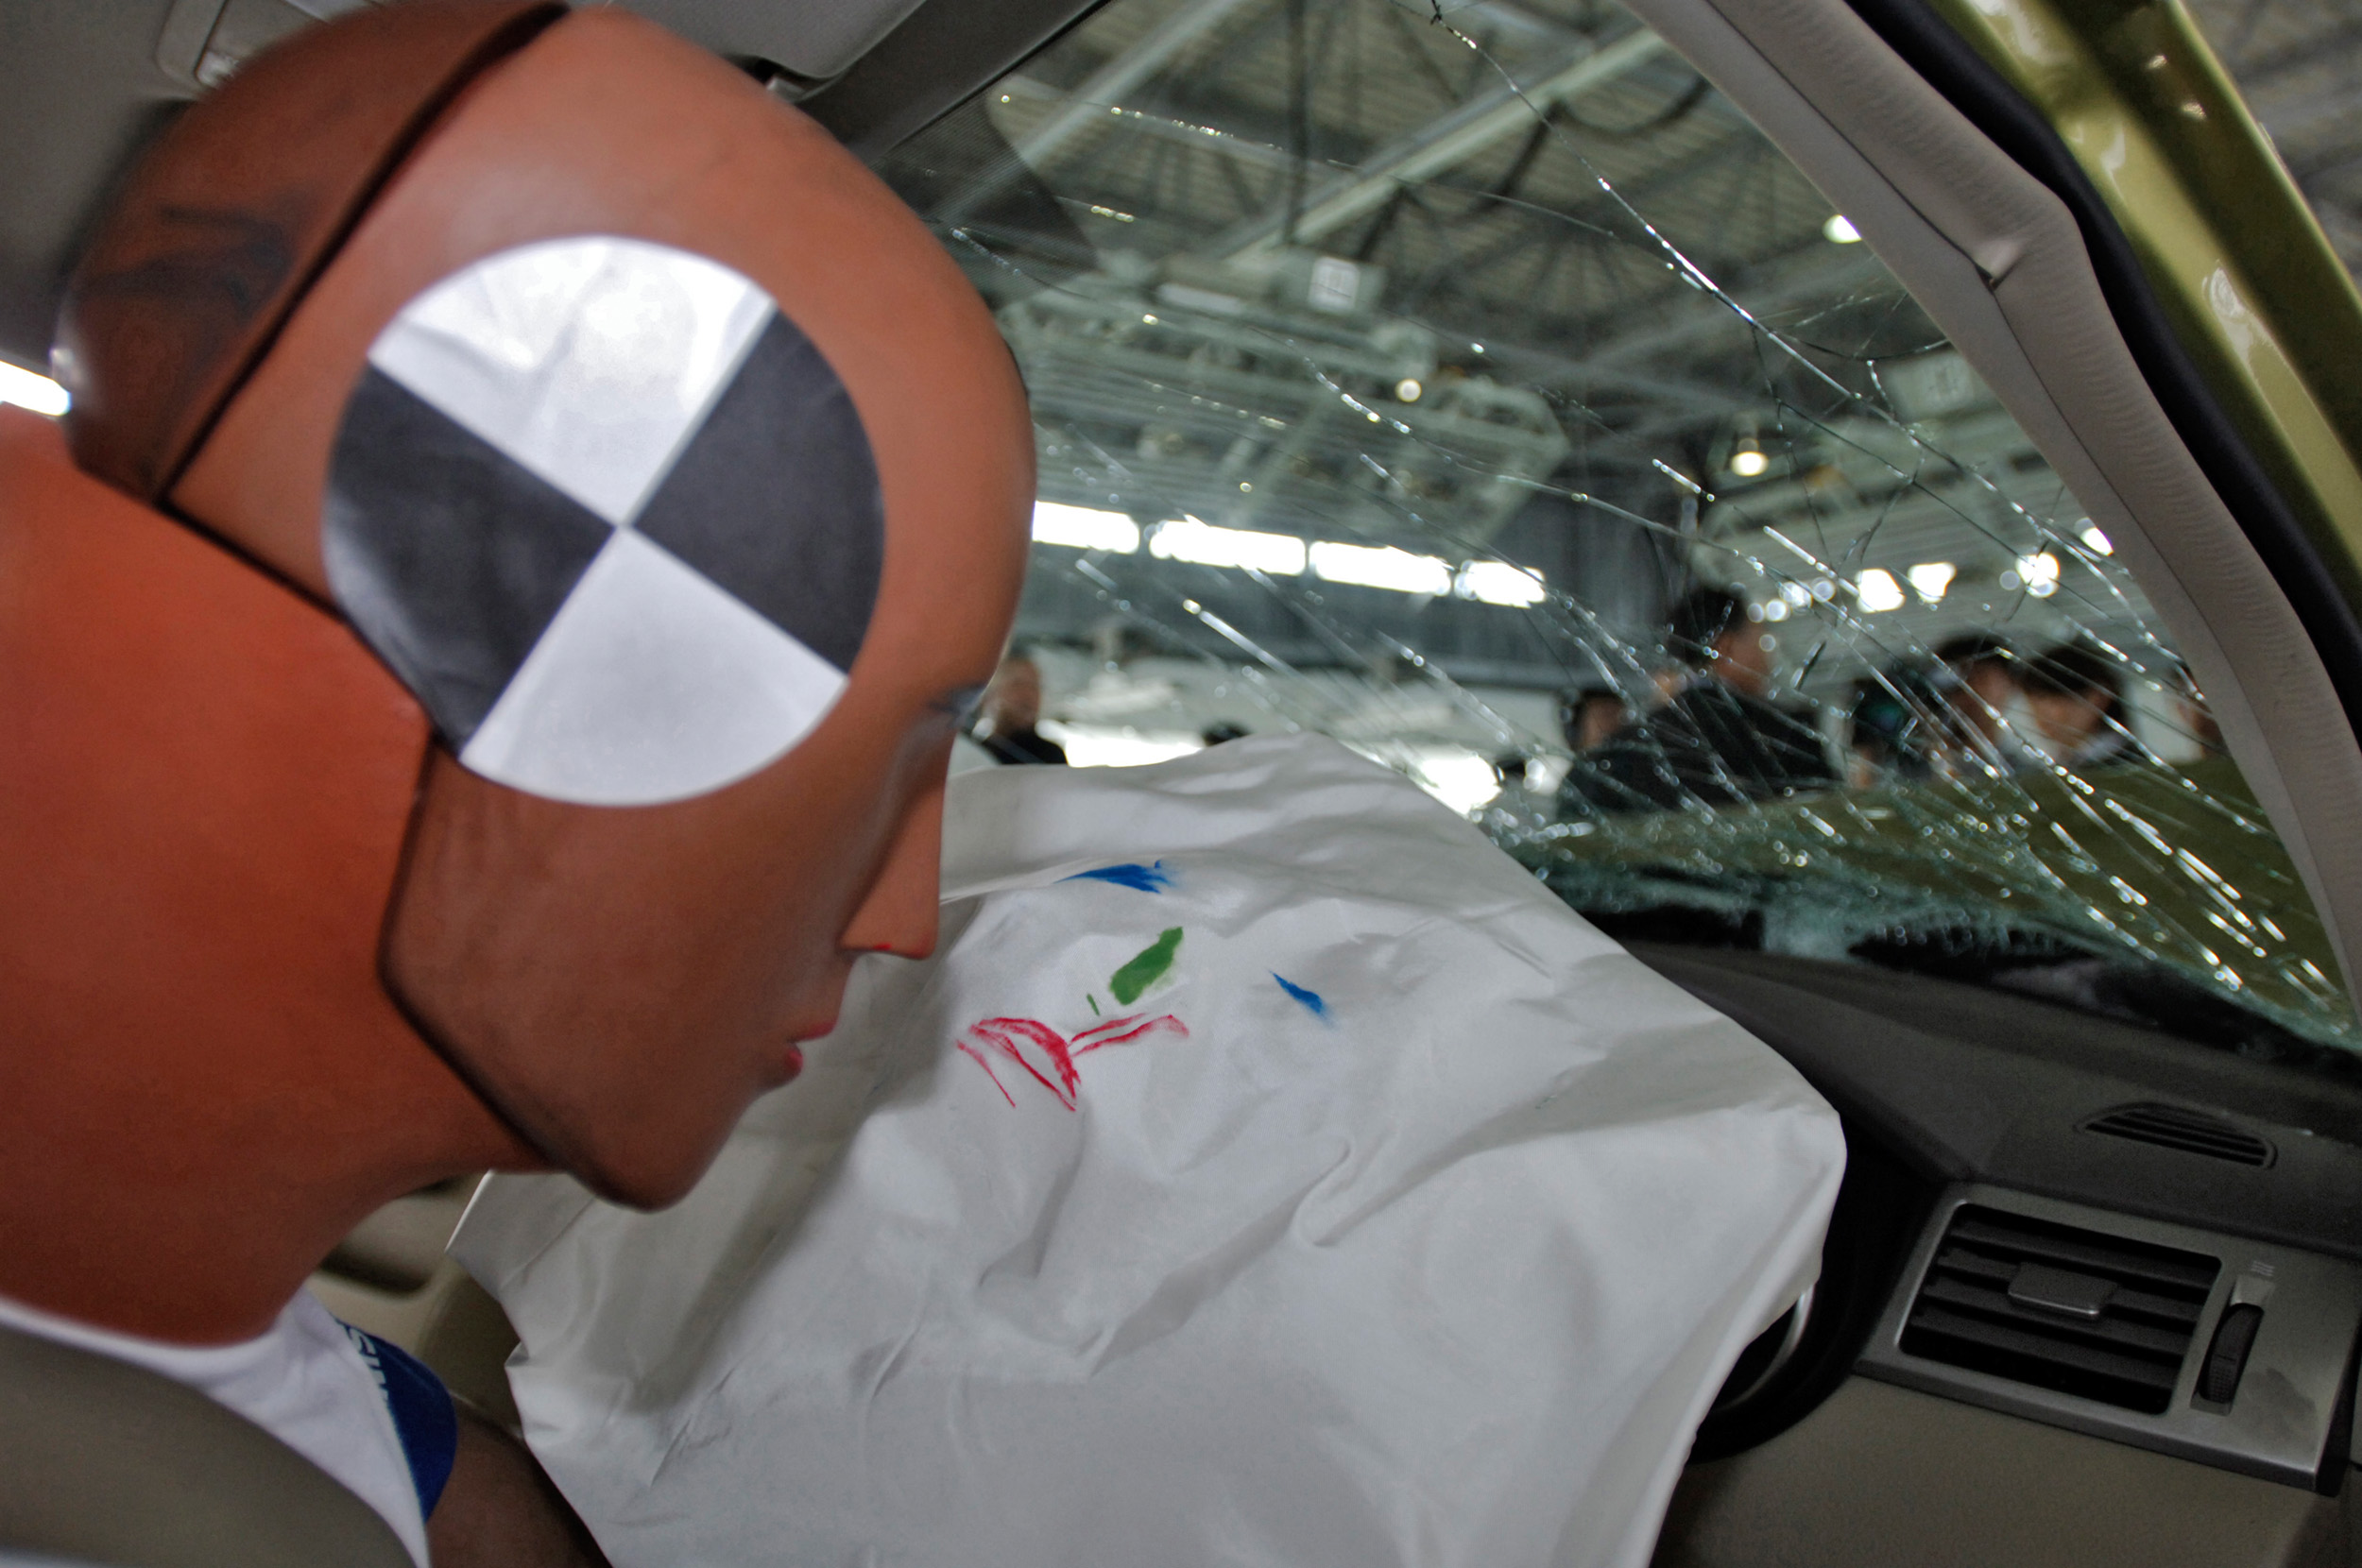 Colored marks indicate where a crash-test dummy's face struck an airbag in a Nissan Tiida sedan following a collision test at the Nissan Advanced Crash Laboratory in Yokosuka City, Japan, on Aug. 31, 2005